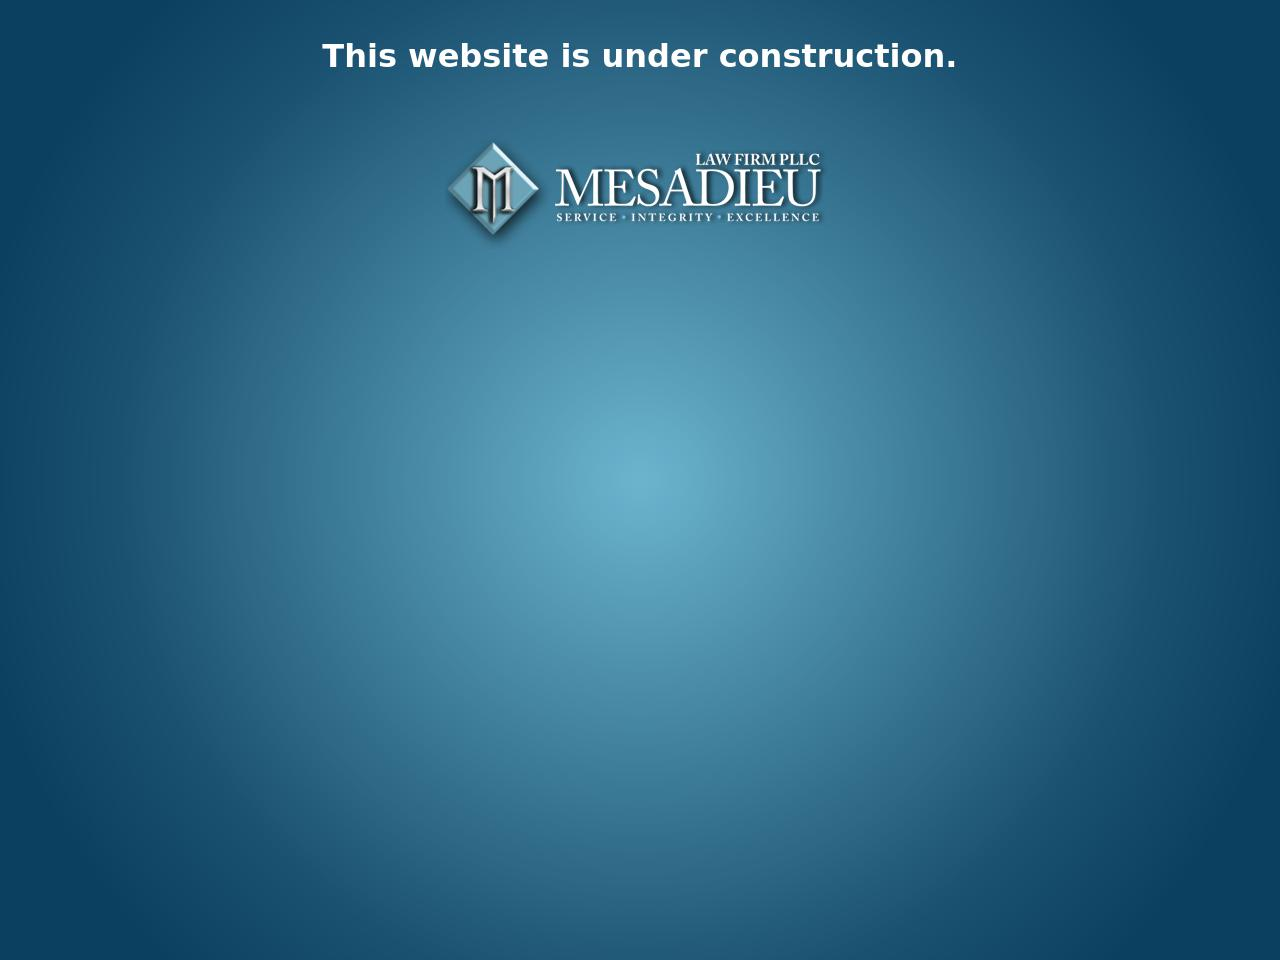 Mesadieu Law Firm, PLLC - Sterling Heights MI Lawyers